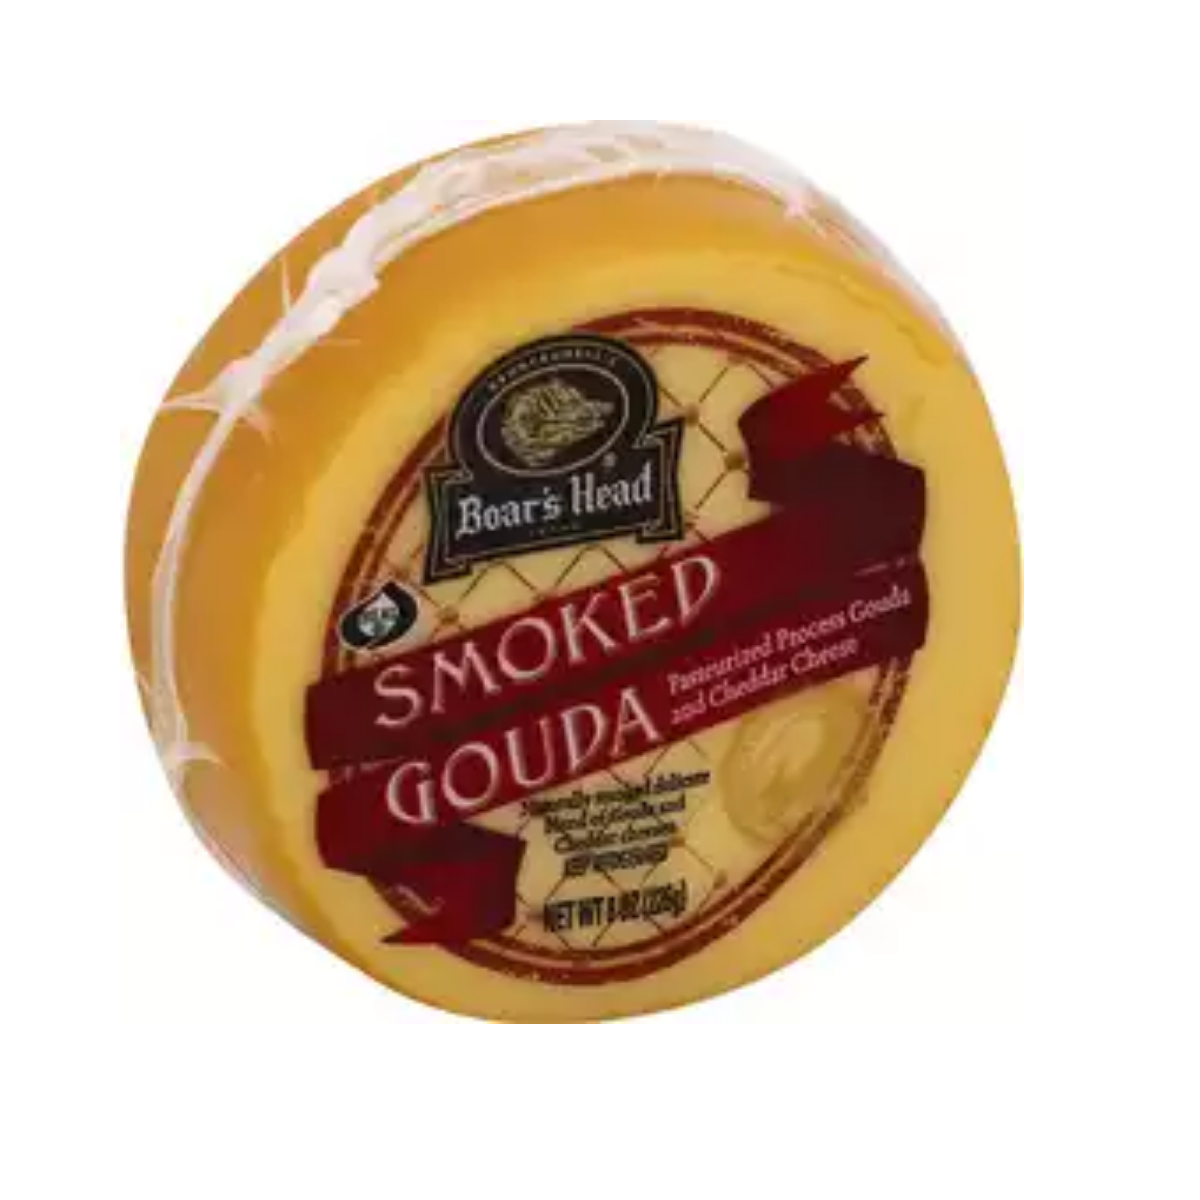 Boar's Head Smoked Gouda